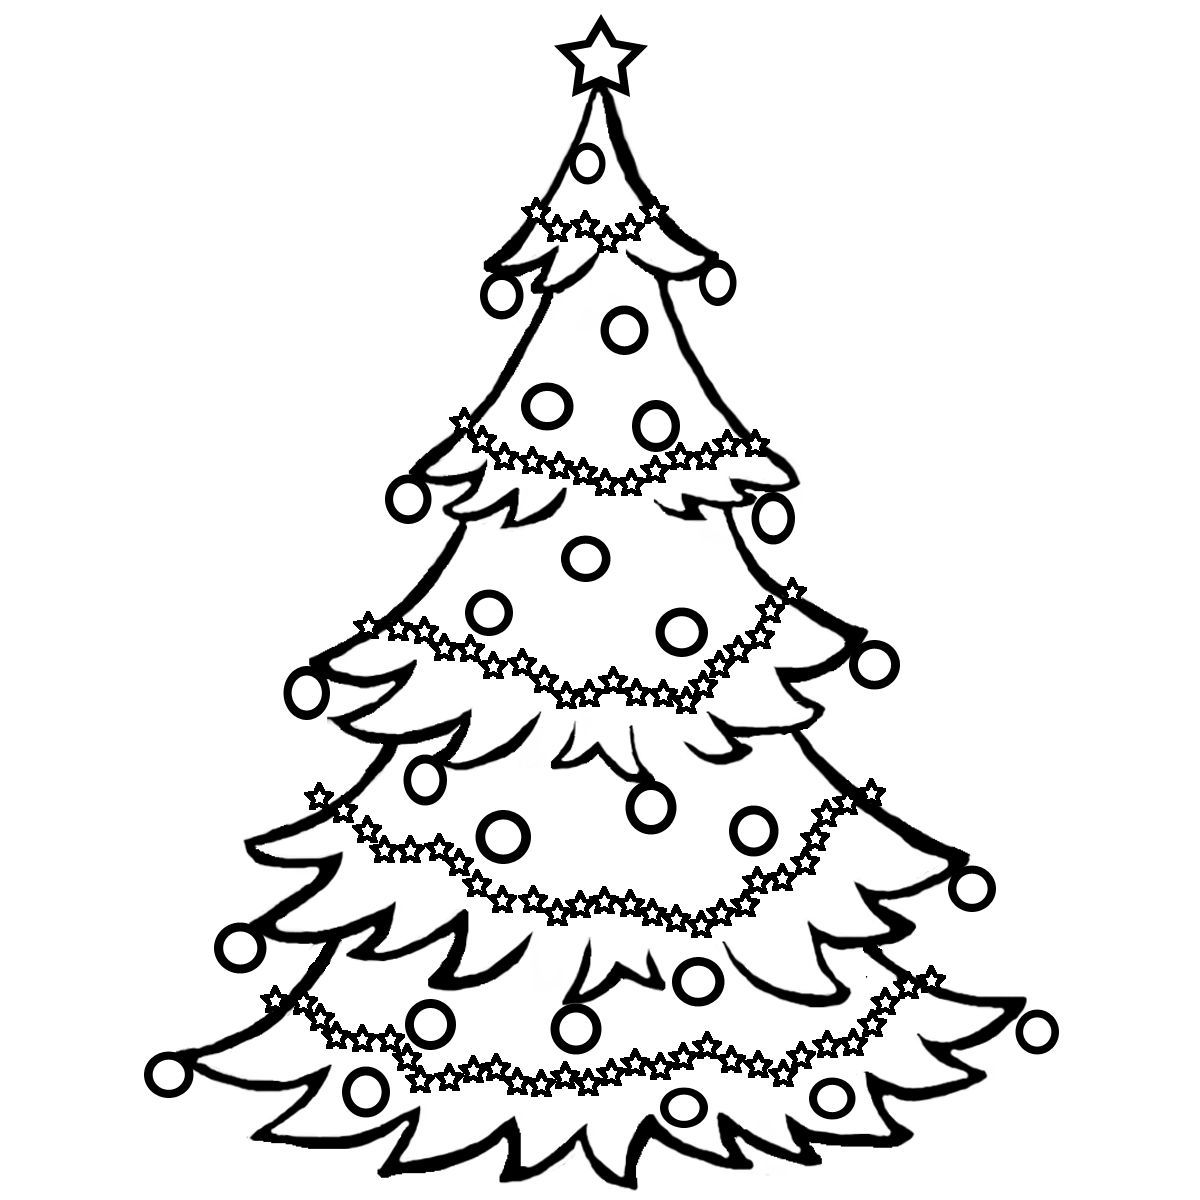 Merry Christmas Tree Coloring Page With Pages Clip Art For